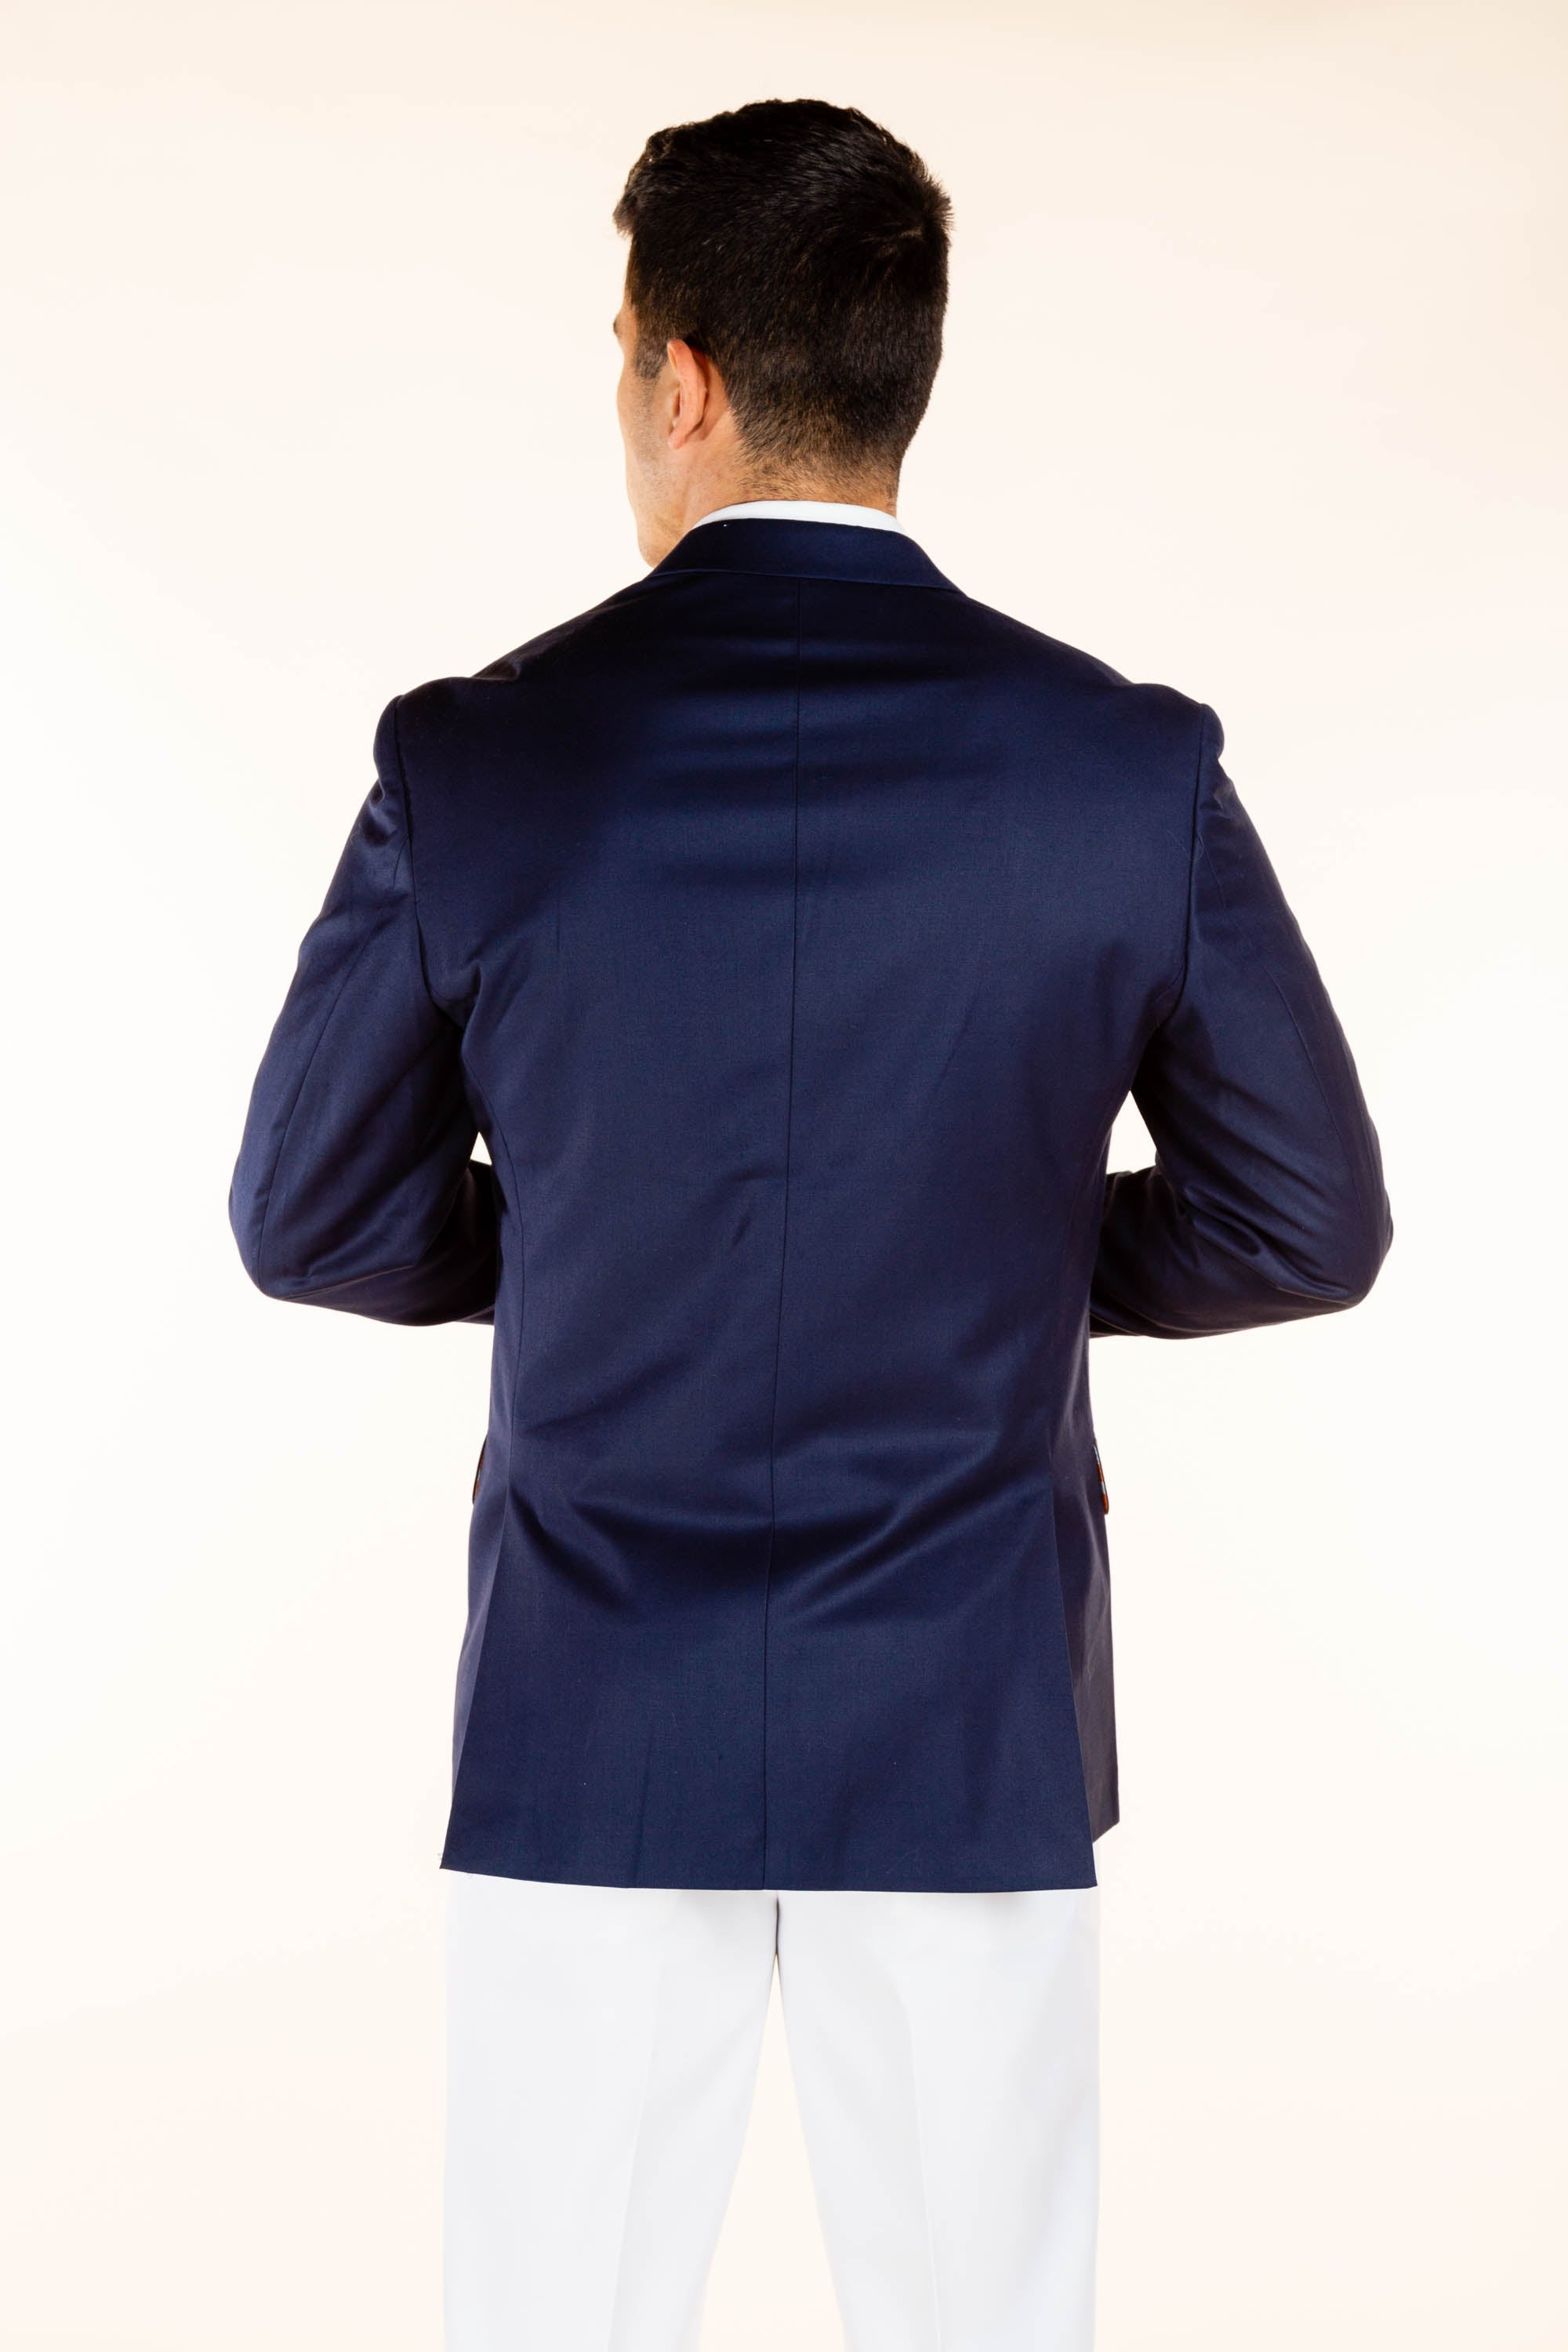 University of florida lined madison blazer